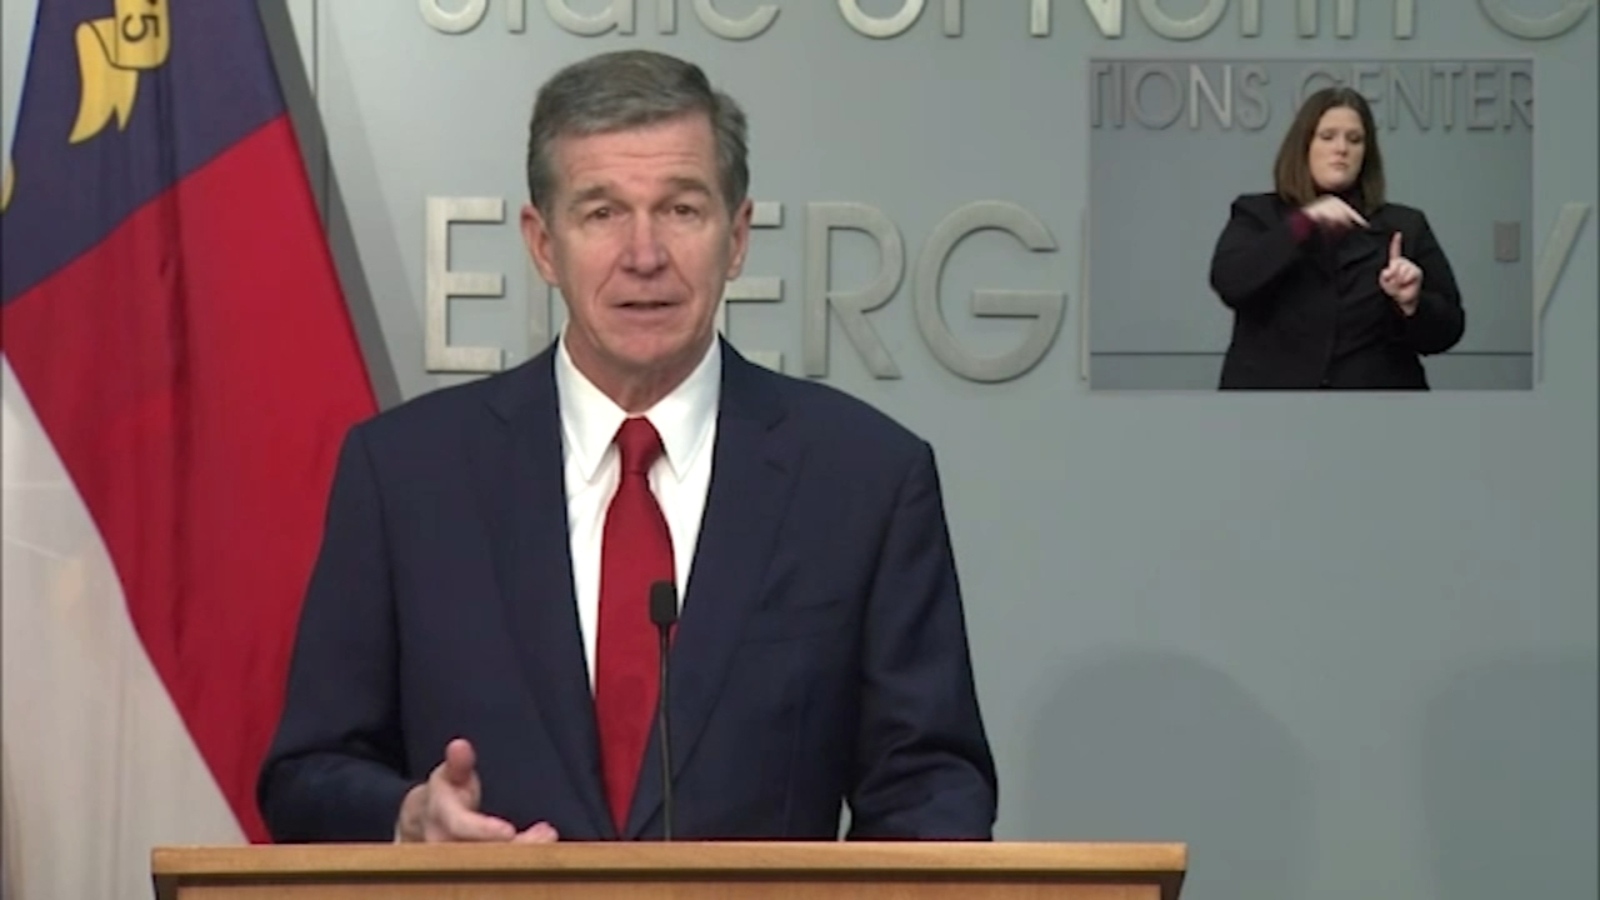 COVID vaccine: Gov. Cooper says NC expected to receive nearly 85,000 doses of Pfizer COVID-19 vaccine after FDA approval - WTVD-TV